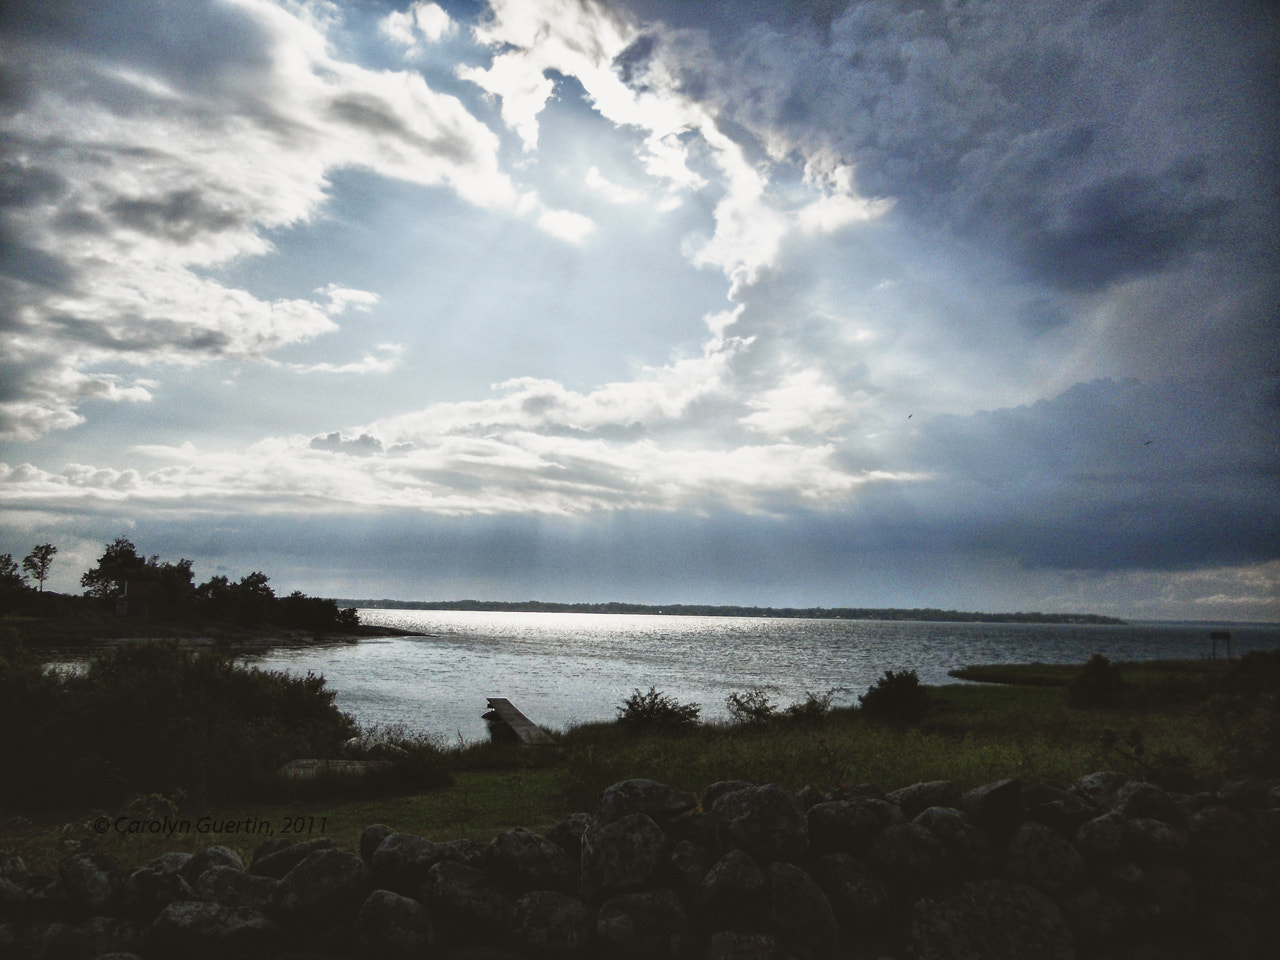 Photograph West Harbour, Aspö by Carolyn Guertin on 500px